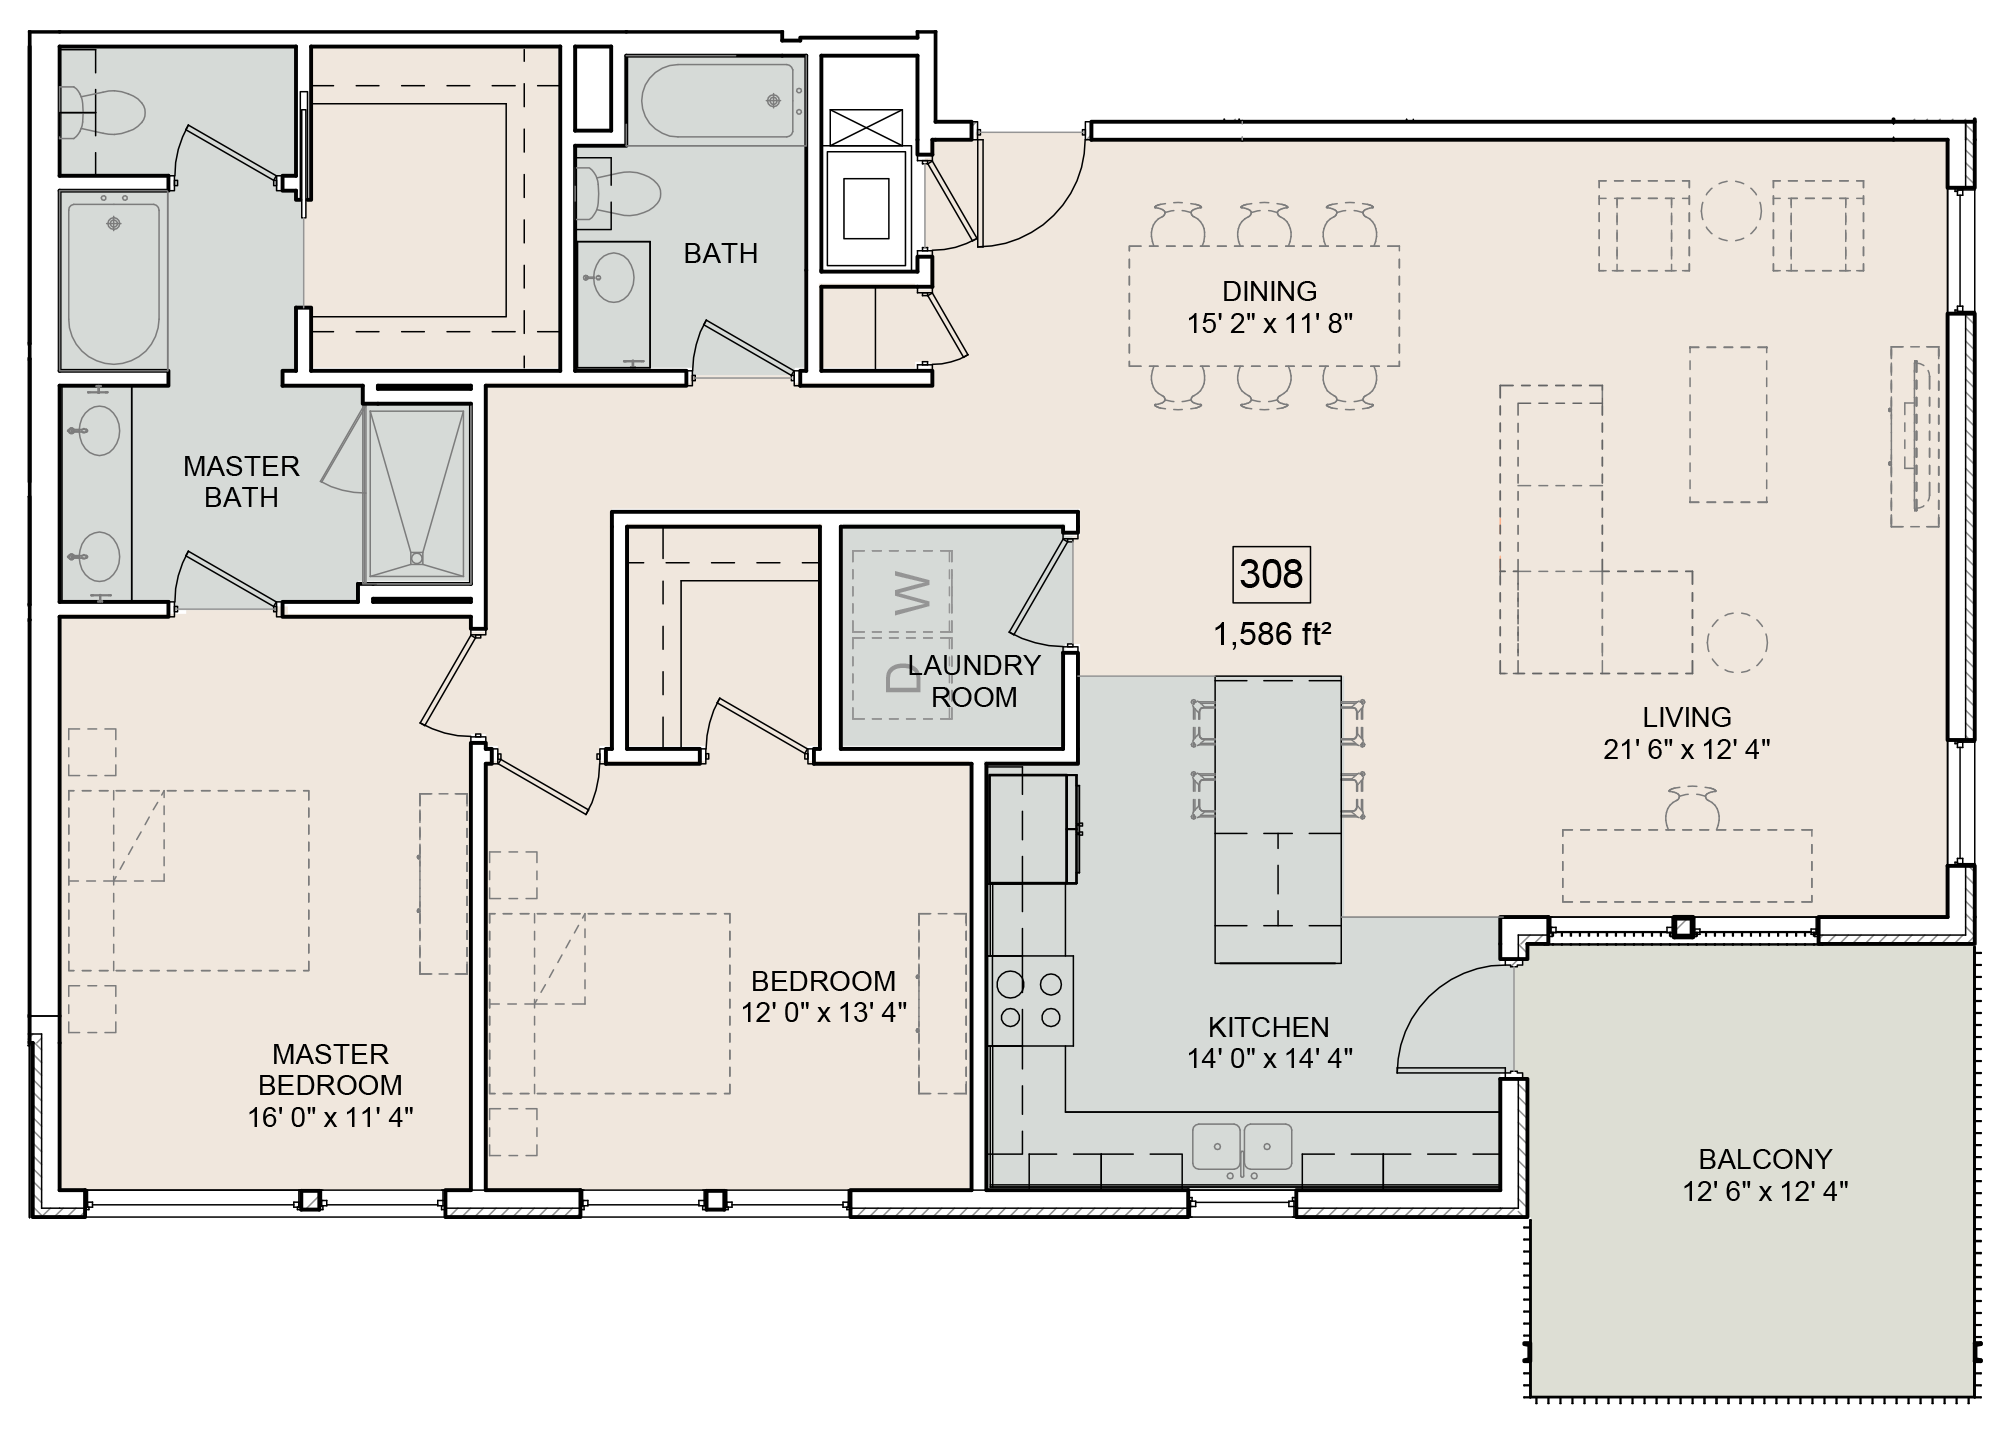 A Whitman unit with 2 Bedrooms and 2 Bathrooms with area of 1586 sq. ft